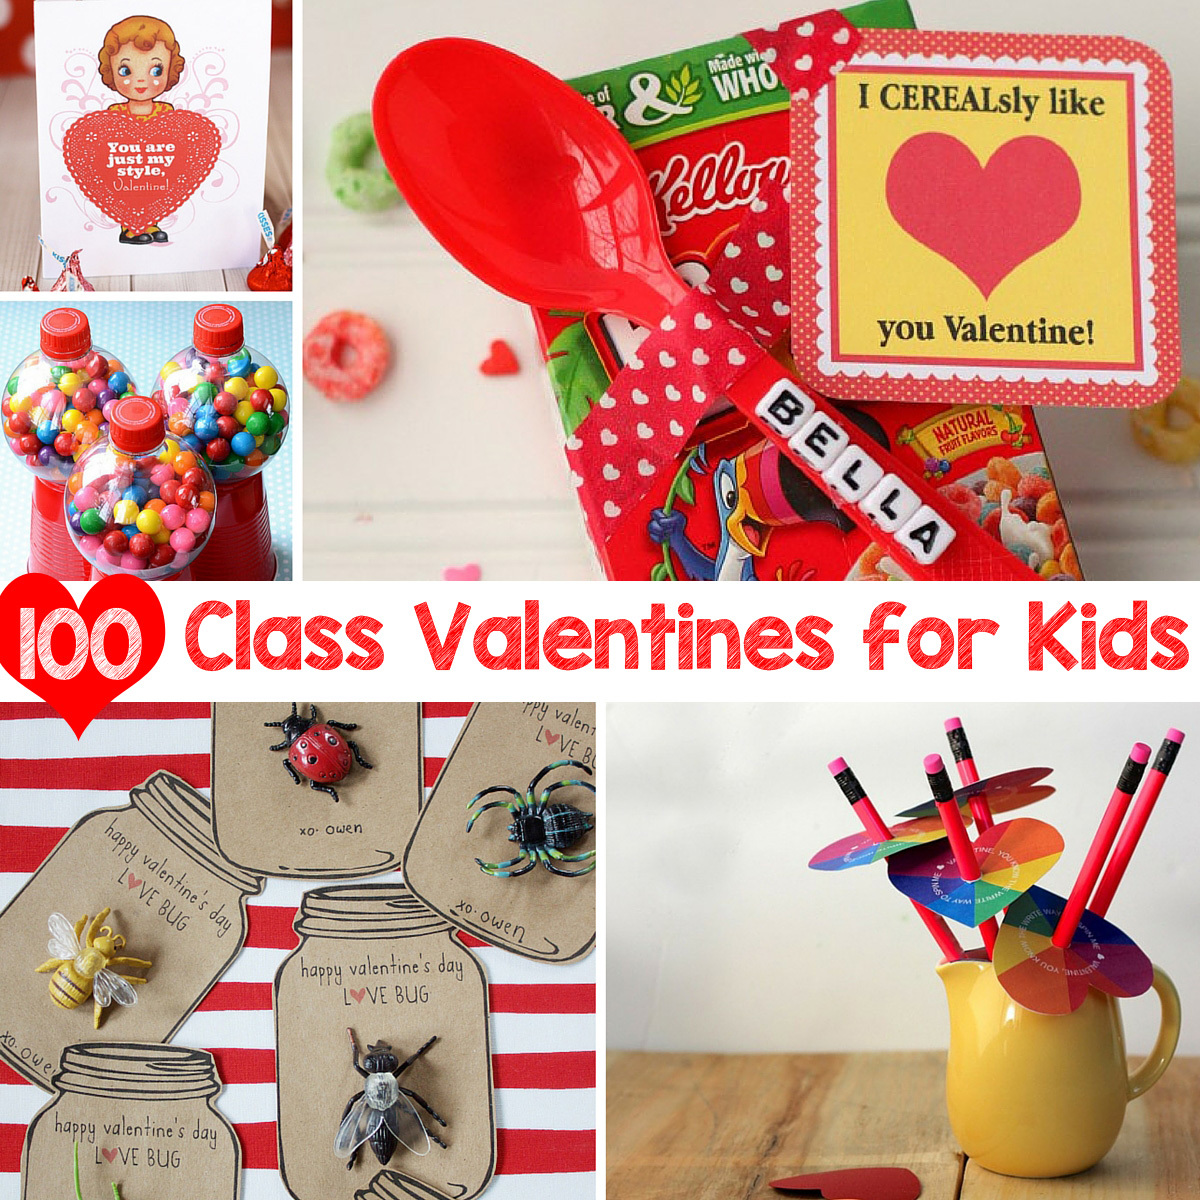 100 Class Valentines for Kids